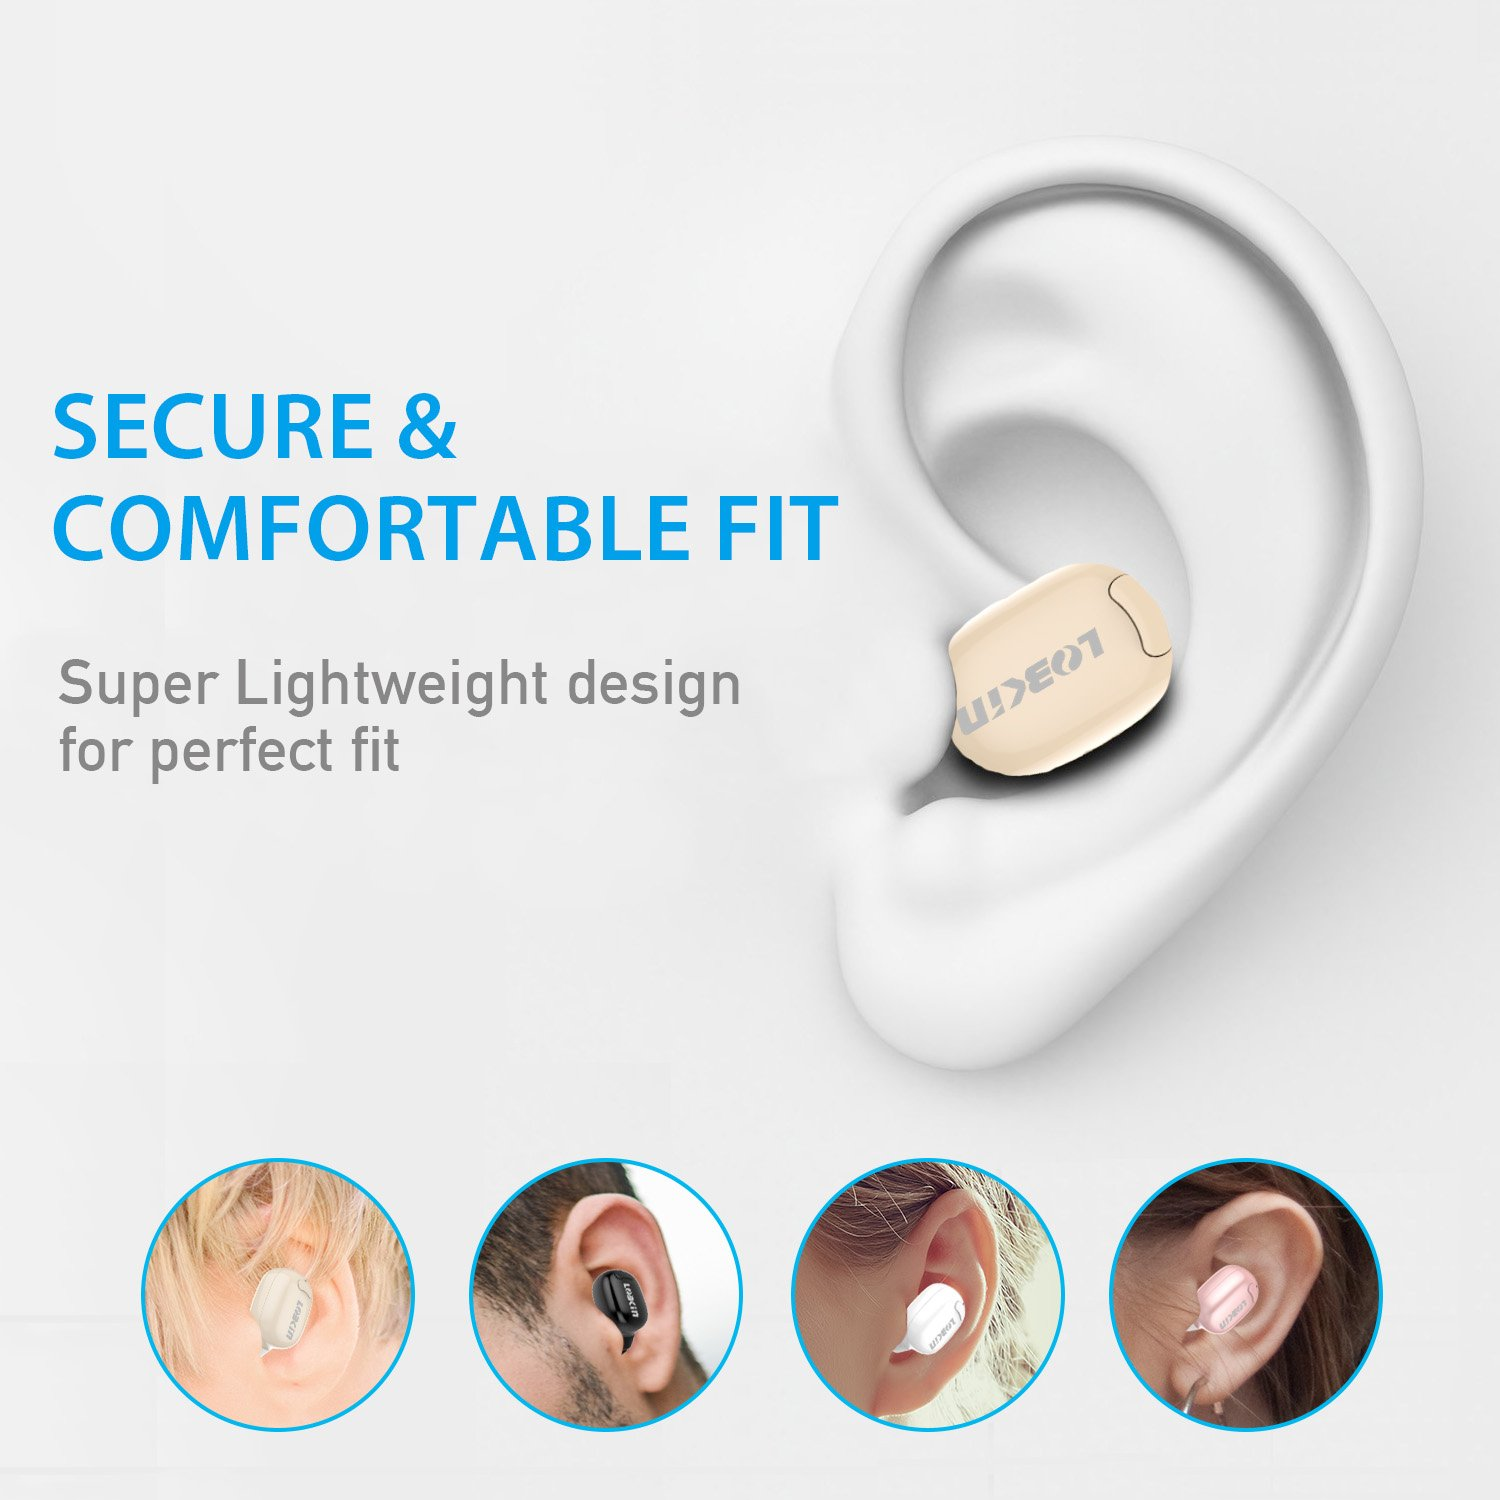 LOBKIN Bluetooth Headphone,Wireless Headset Invisible Earbud Ultra In Ear Earphone Earpiece Handsfree with Mic,Paired with Two Smartphones for iPhone,Samsung,HTC,LG and Other Bluetooth Devices (Beige)